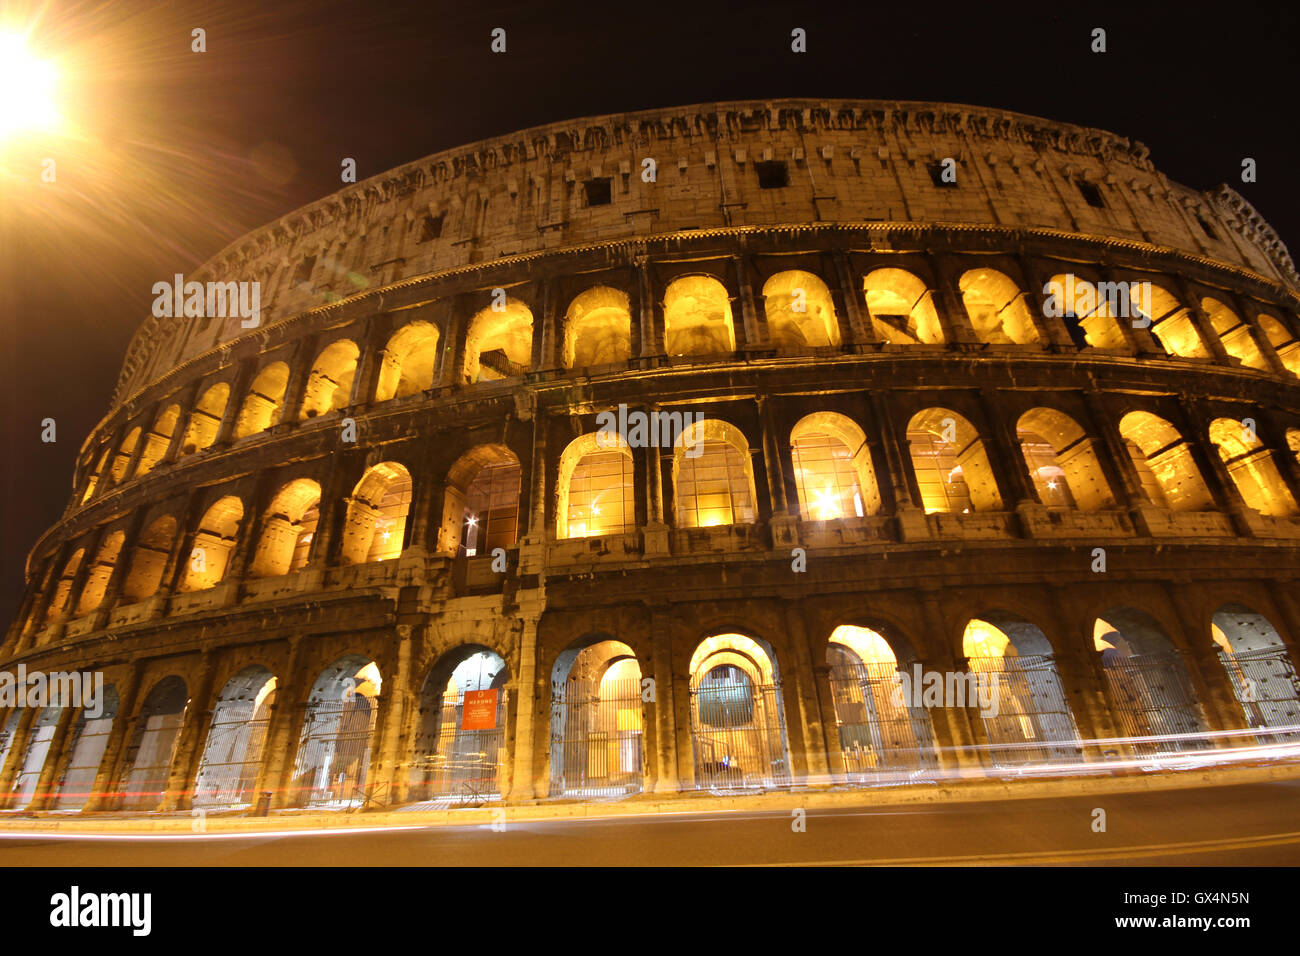 a stunning night shot of the Colosseum, Rome, Italy, il Colosseo, Roma Stock Photo